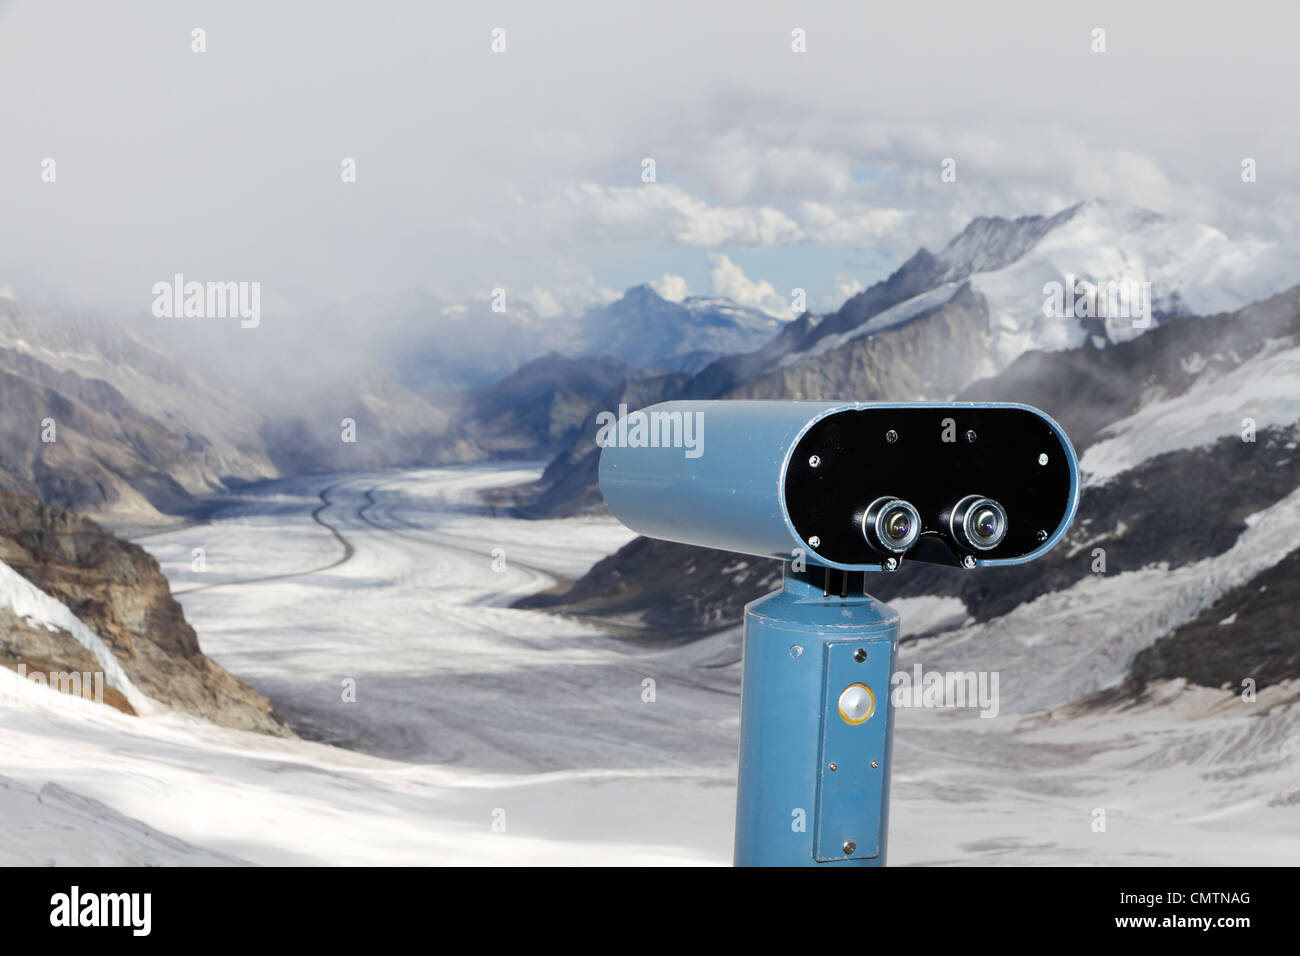 concept for for look out, observation and forecast: binoculars view over panorama view above Aletsch glacier - Stock Image